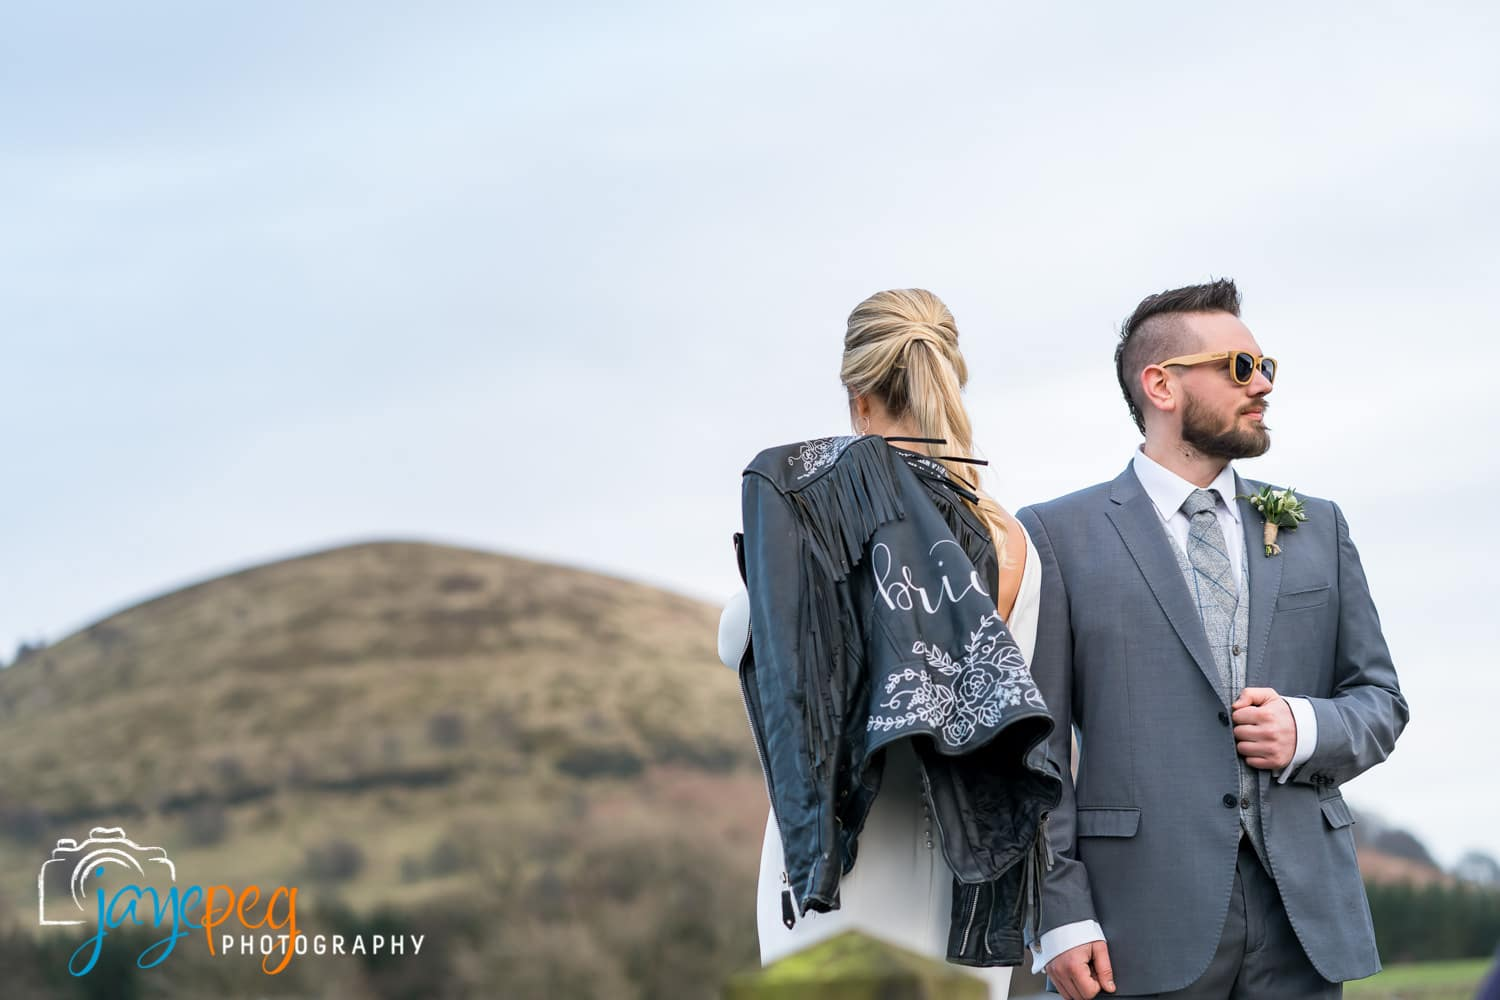 bride with leather jacket and groom with sunglasses framed against a beautiful blue sky